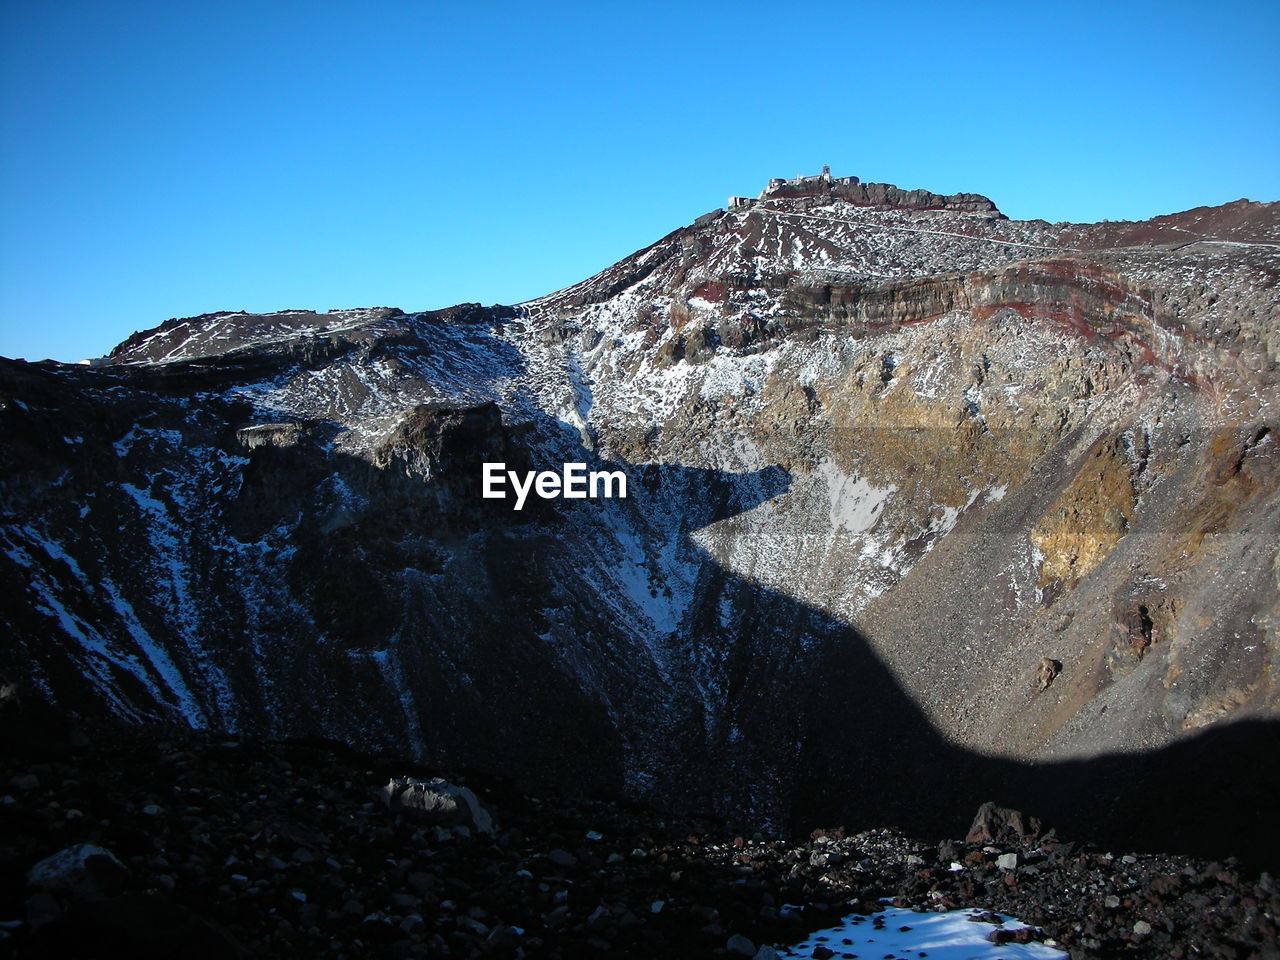 sky, clear sky, rock, mountain, nature, beauty in nature, tranquil scene, solid, scenics - nature, rock - object, blue, tranquility, no people, day, rock formation, non-urban scene, physical geography, sunlight, geology, land, mountain range, outdoors, formation, eroded, mountain peak, volcanic crater